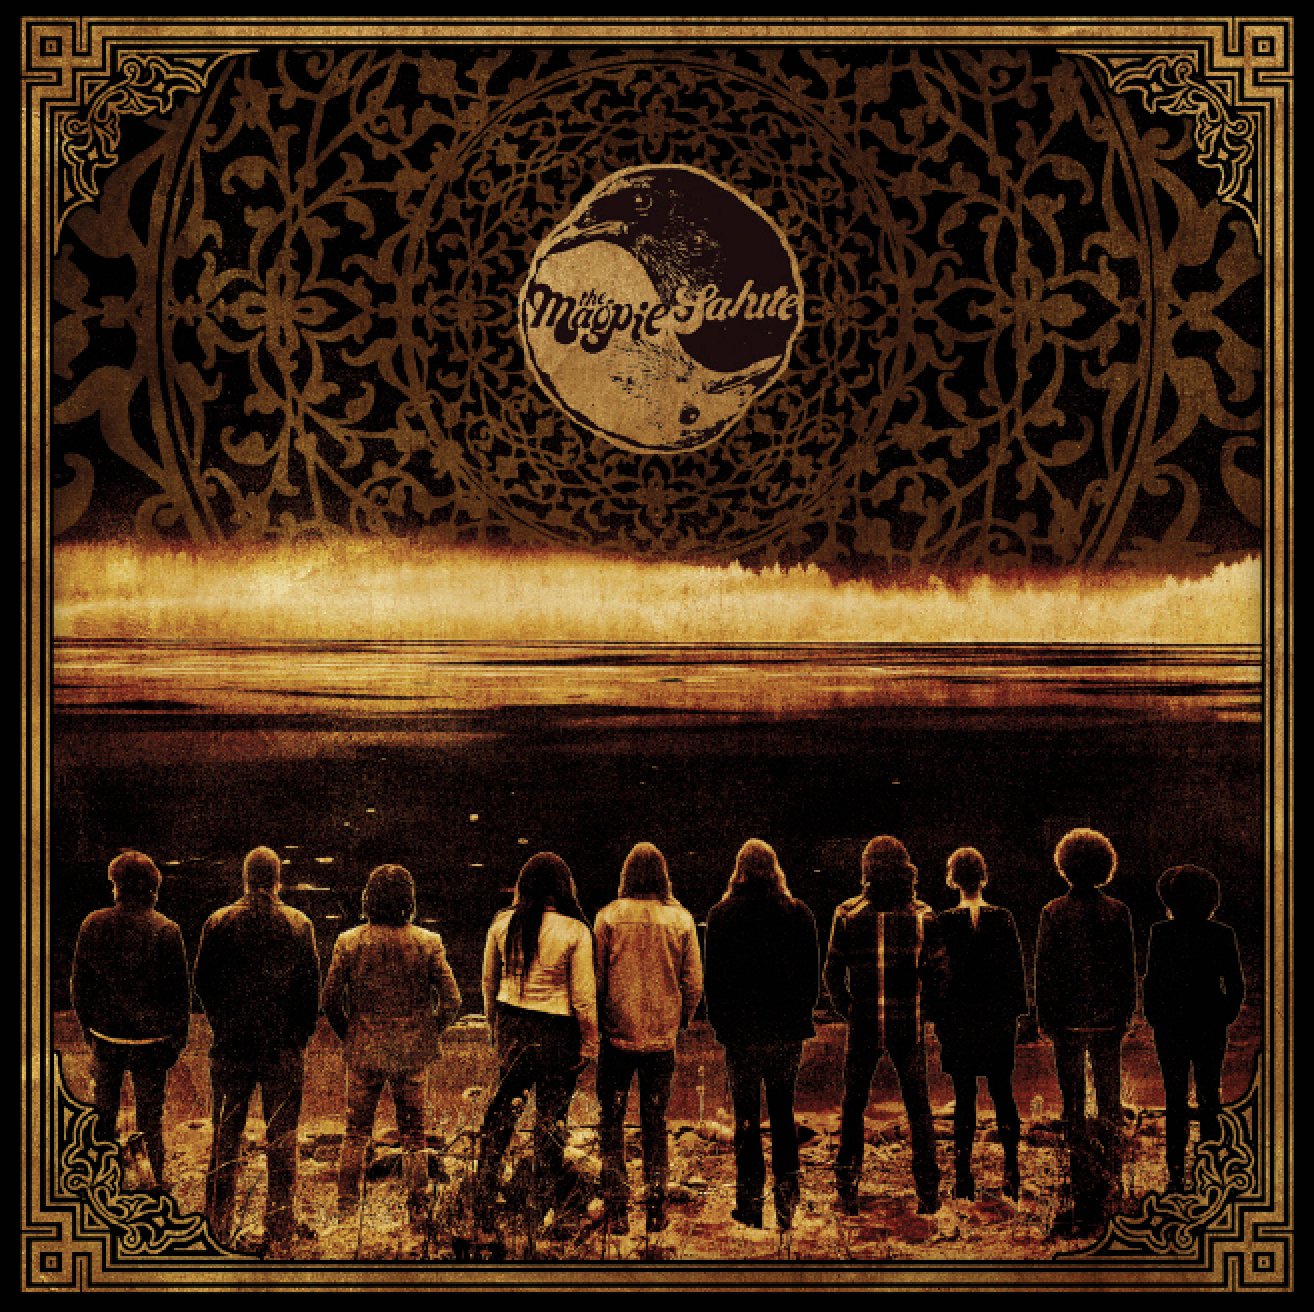 THE MAGPIE SALUTE <br/> The Magpie Salute